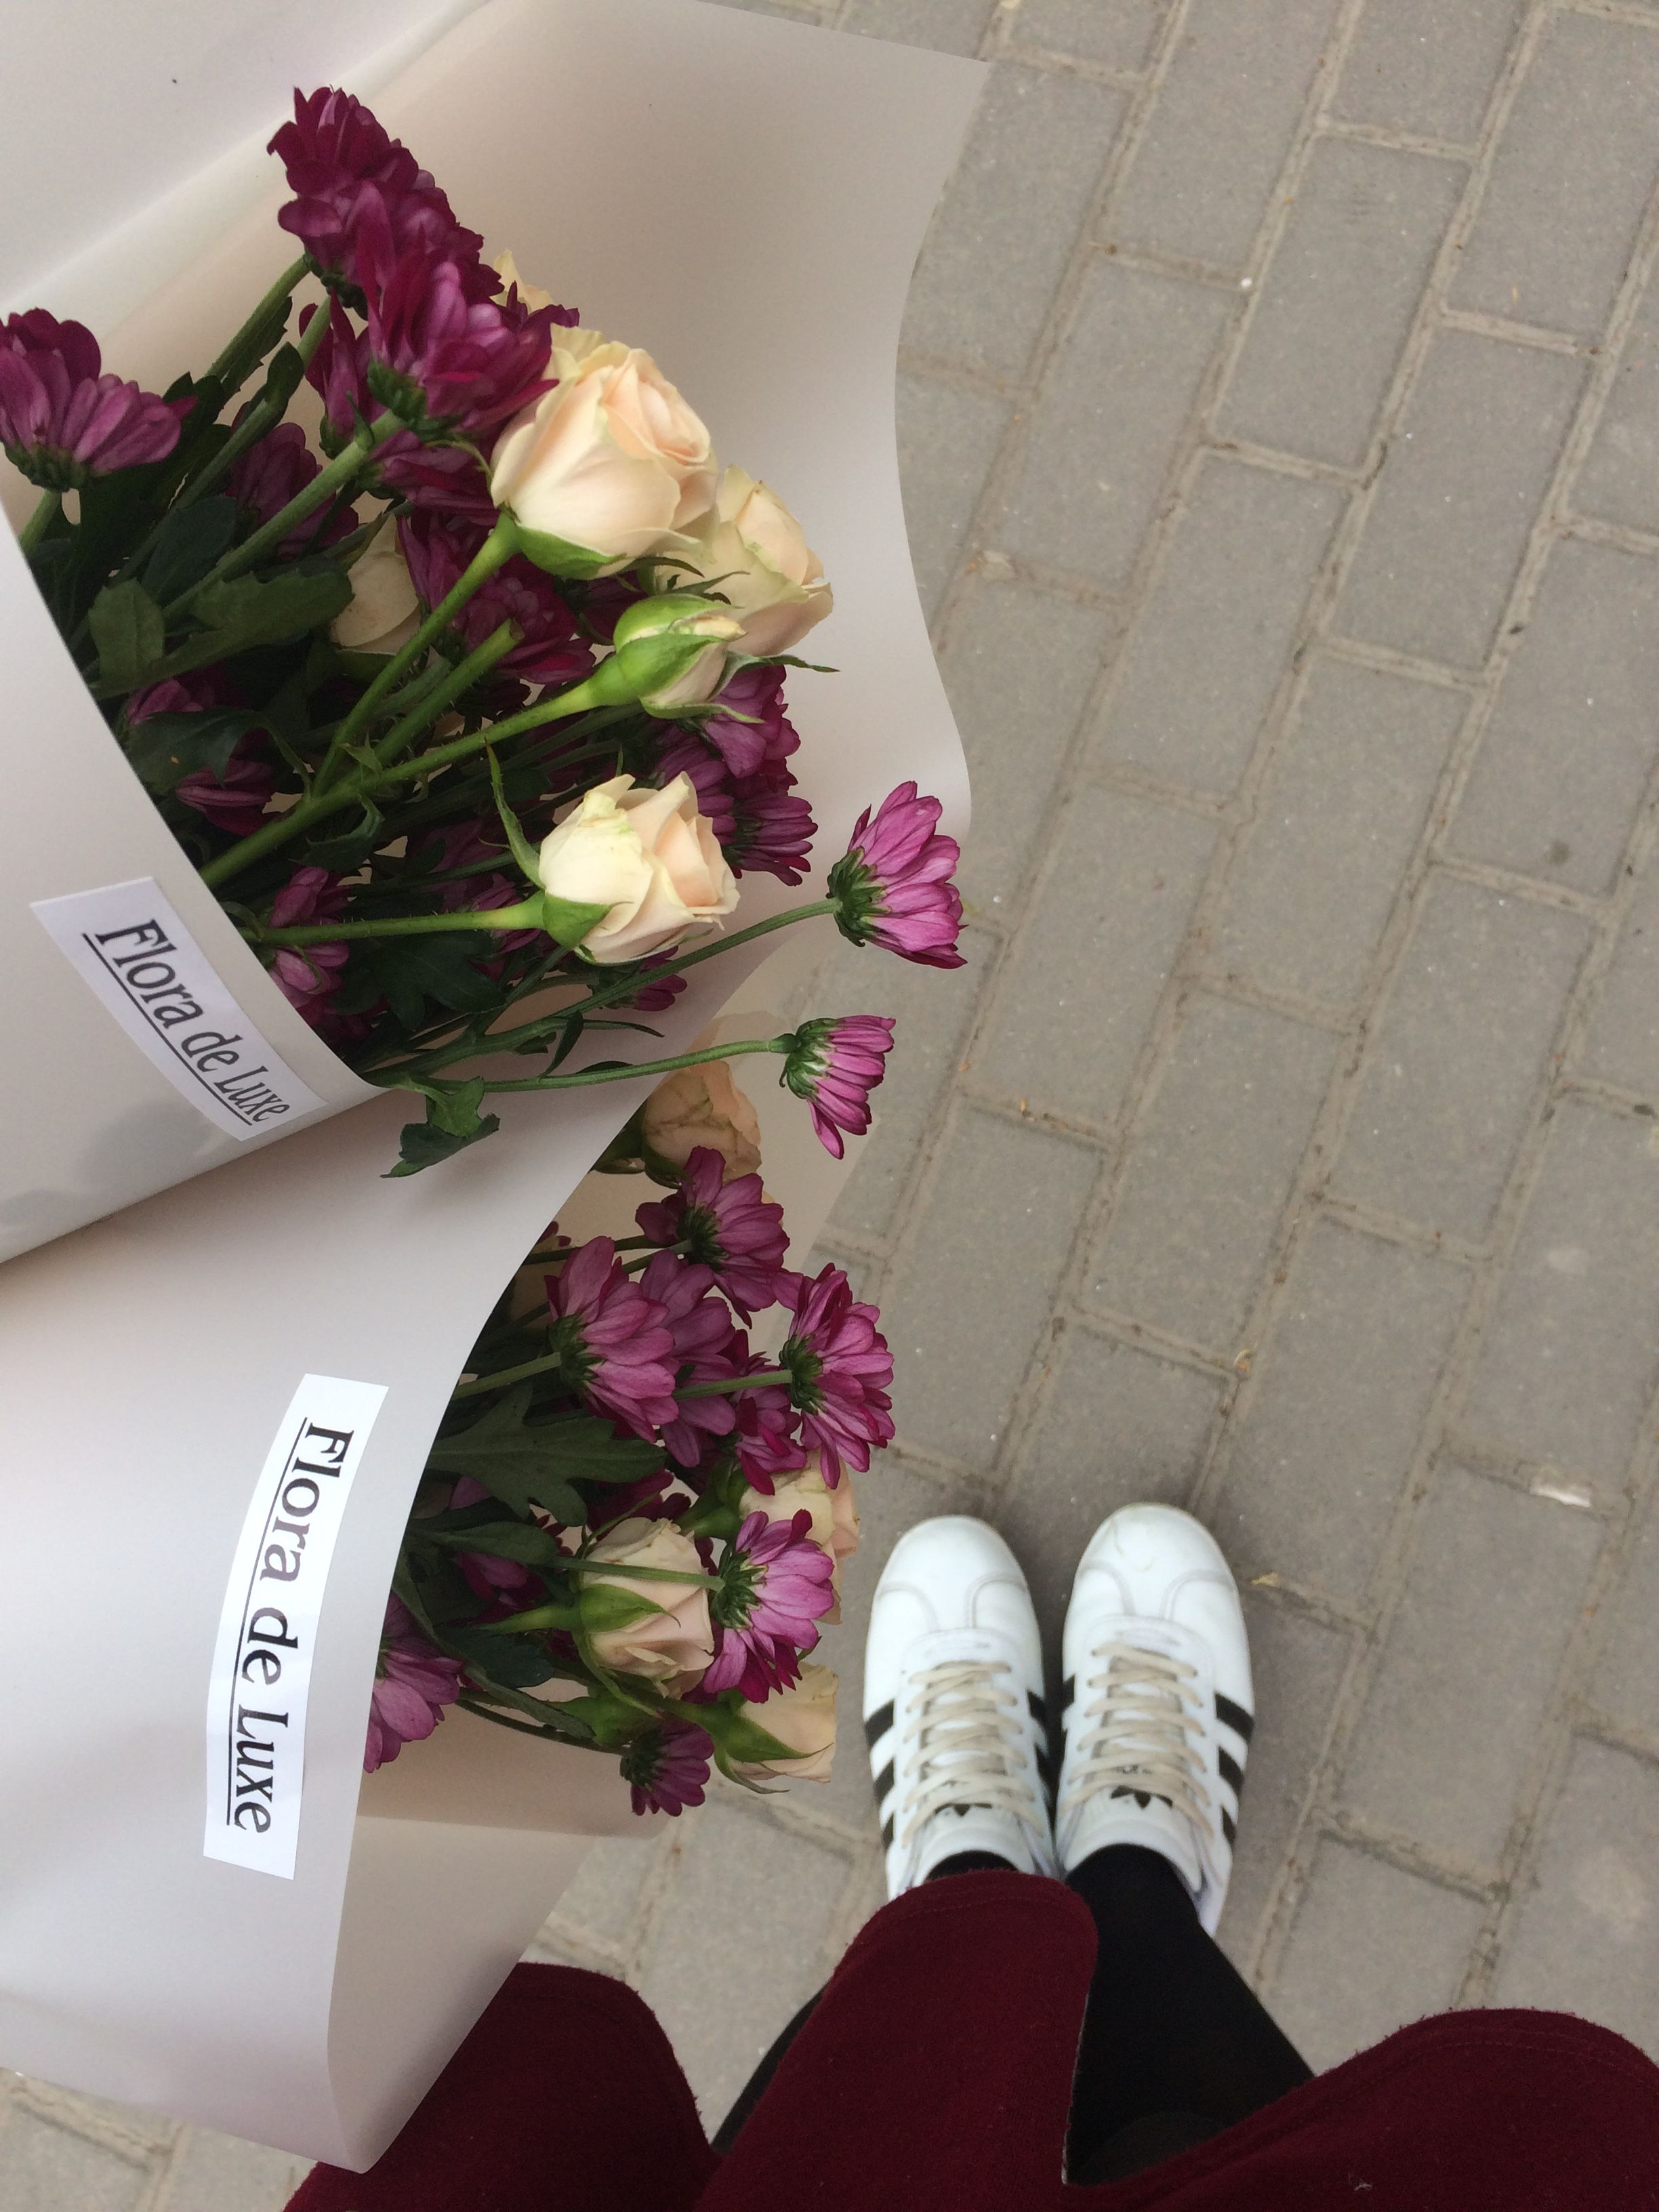 Pin by Tanya Lapyuk on Флористика Superga sneaker